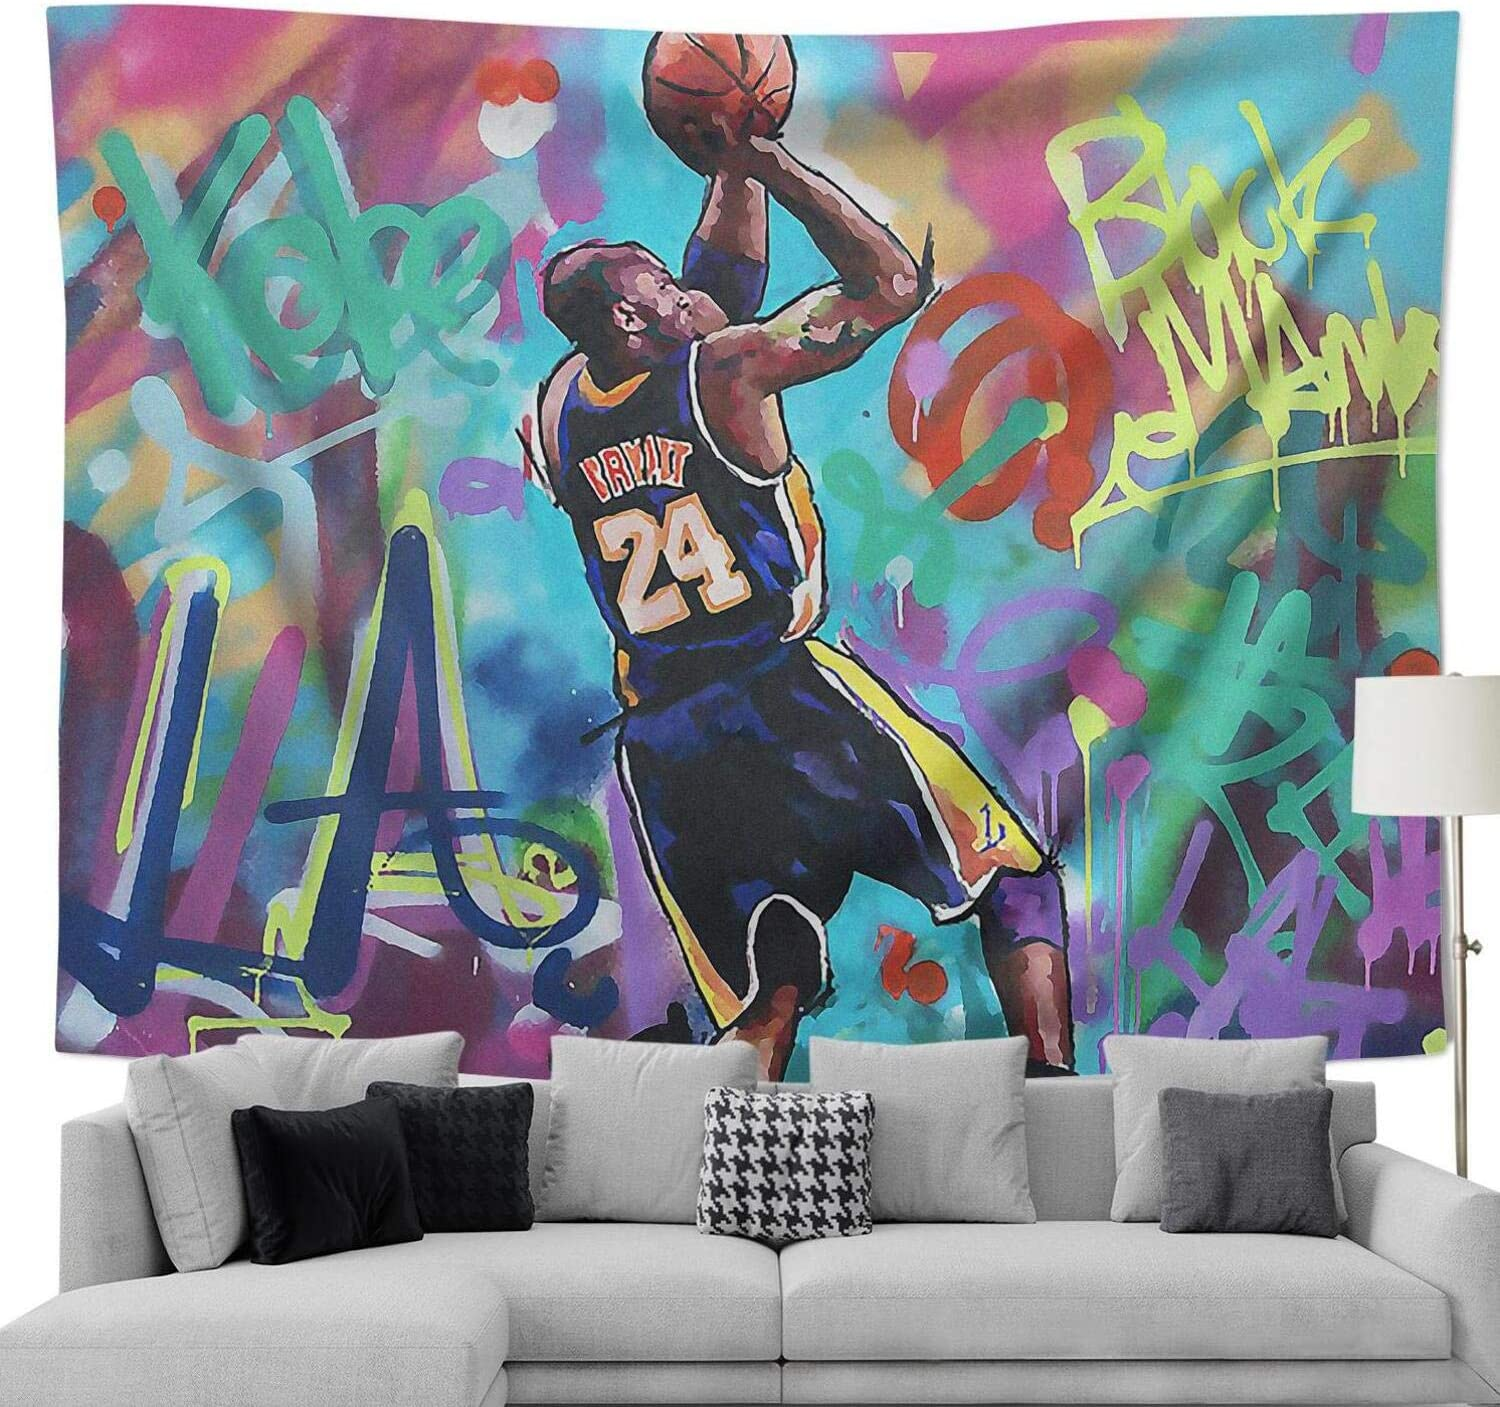 COOLGOOD LA Legend 8 24 Basketball-Player Tapestry,Wall Hanging Bedroom Decor, for Men Women Teen Girl College Dorm Room Decor Livingroom Tapestrys (I Love You-28, 90x70 inch)